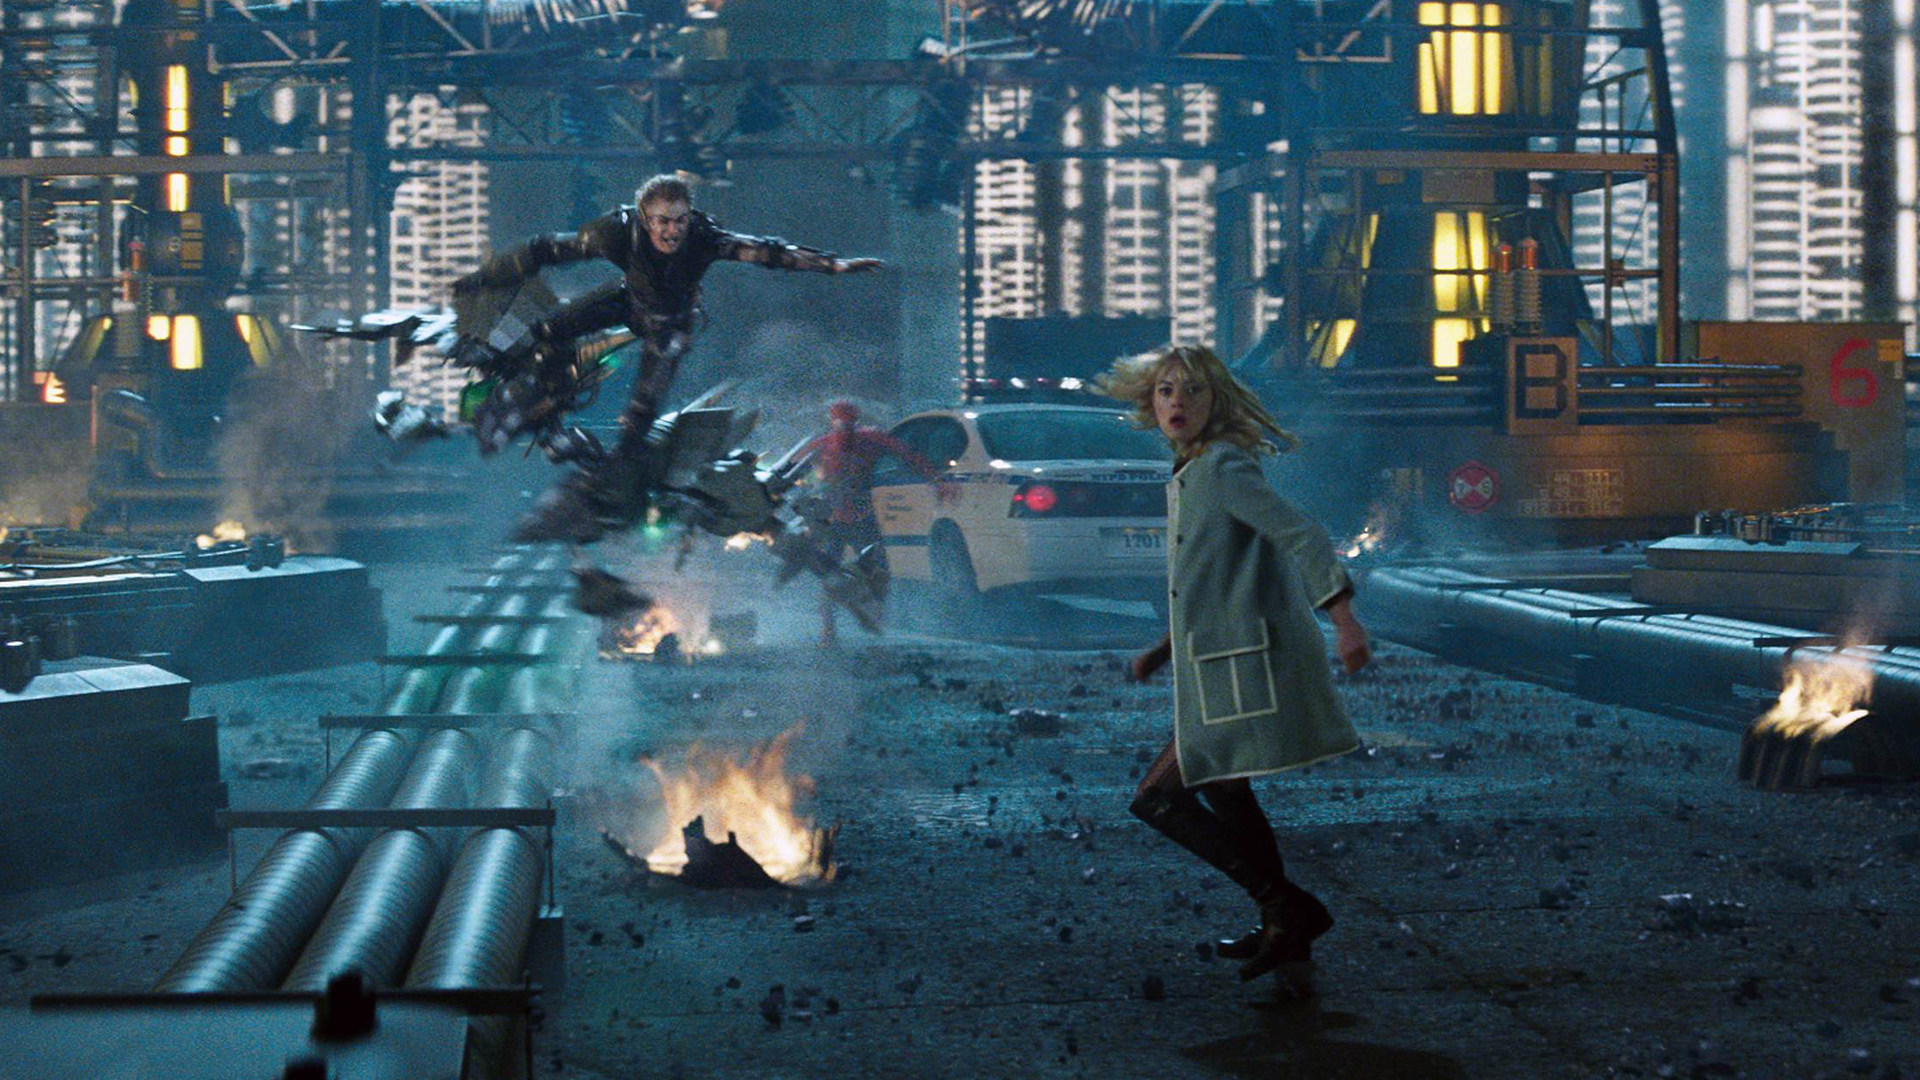 Green Goblin Gwen Stacy 2014 1e Wallpape Source Audienceseverywhere Report The Amazing Spider Man 2 Wallpaper